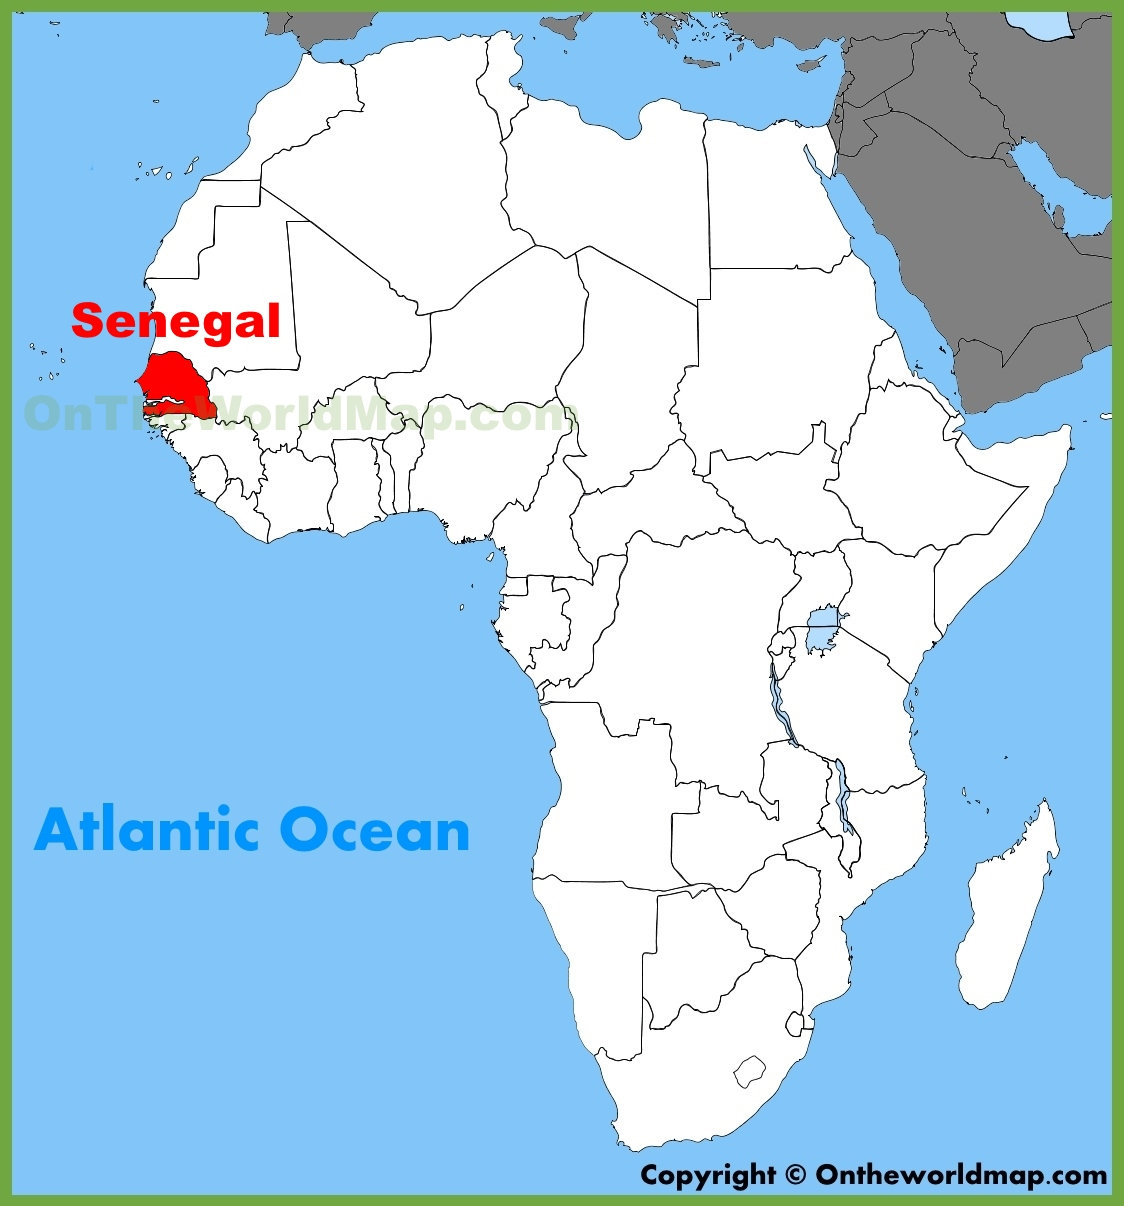 Senegal location on the Africa map